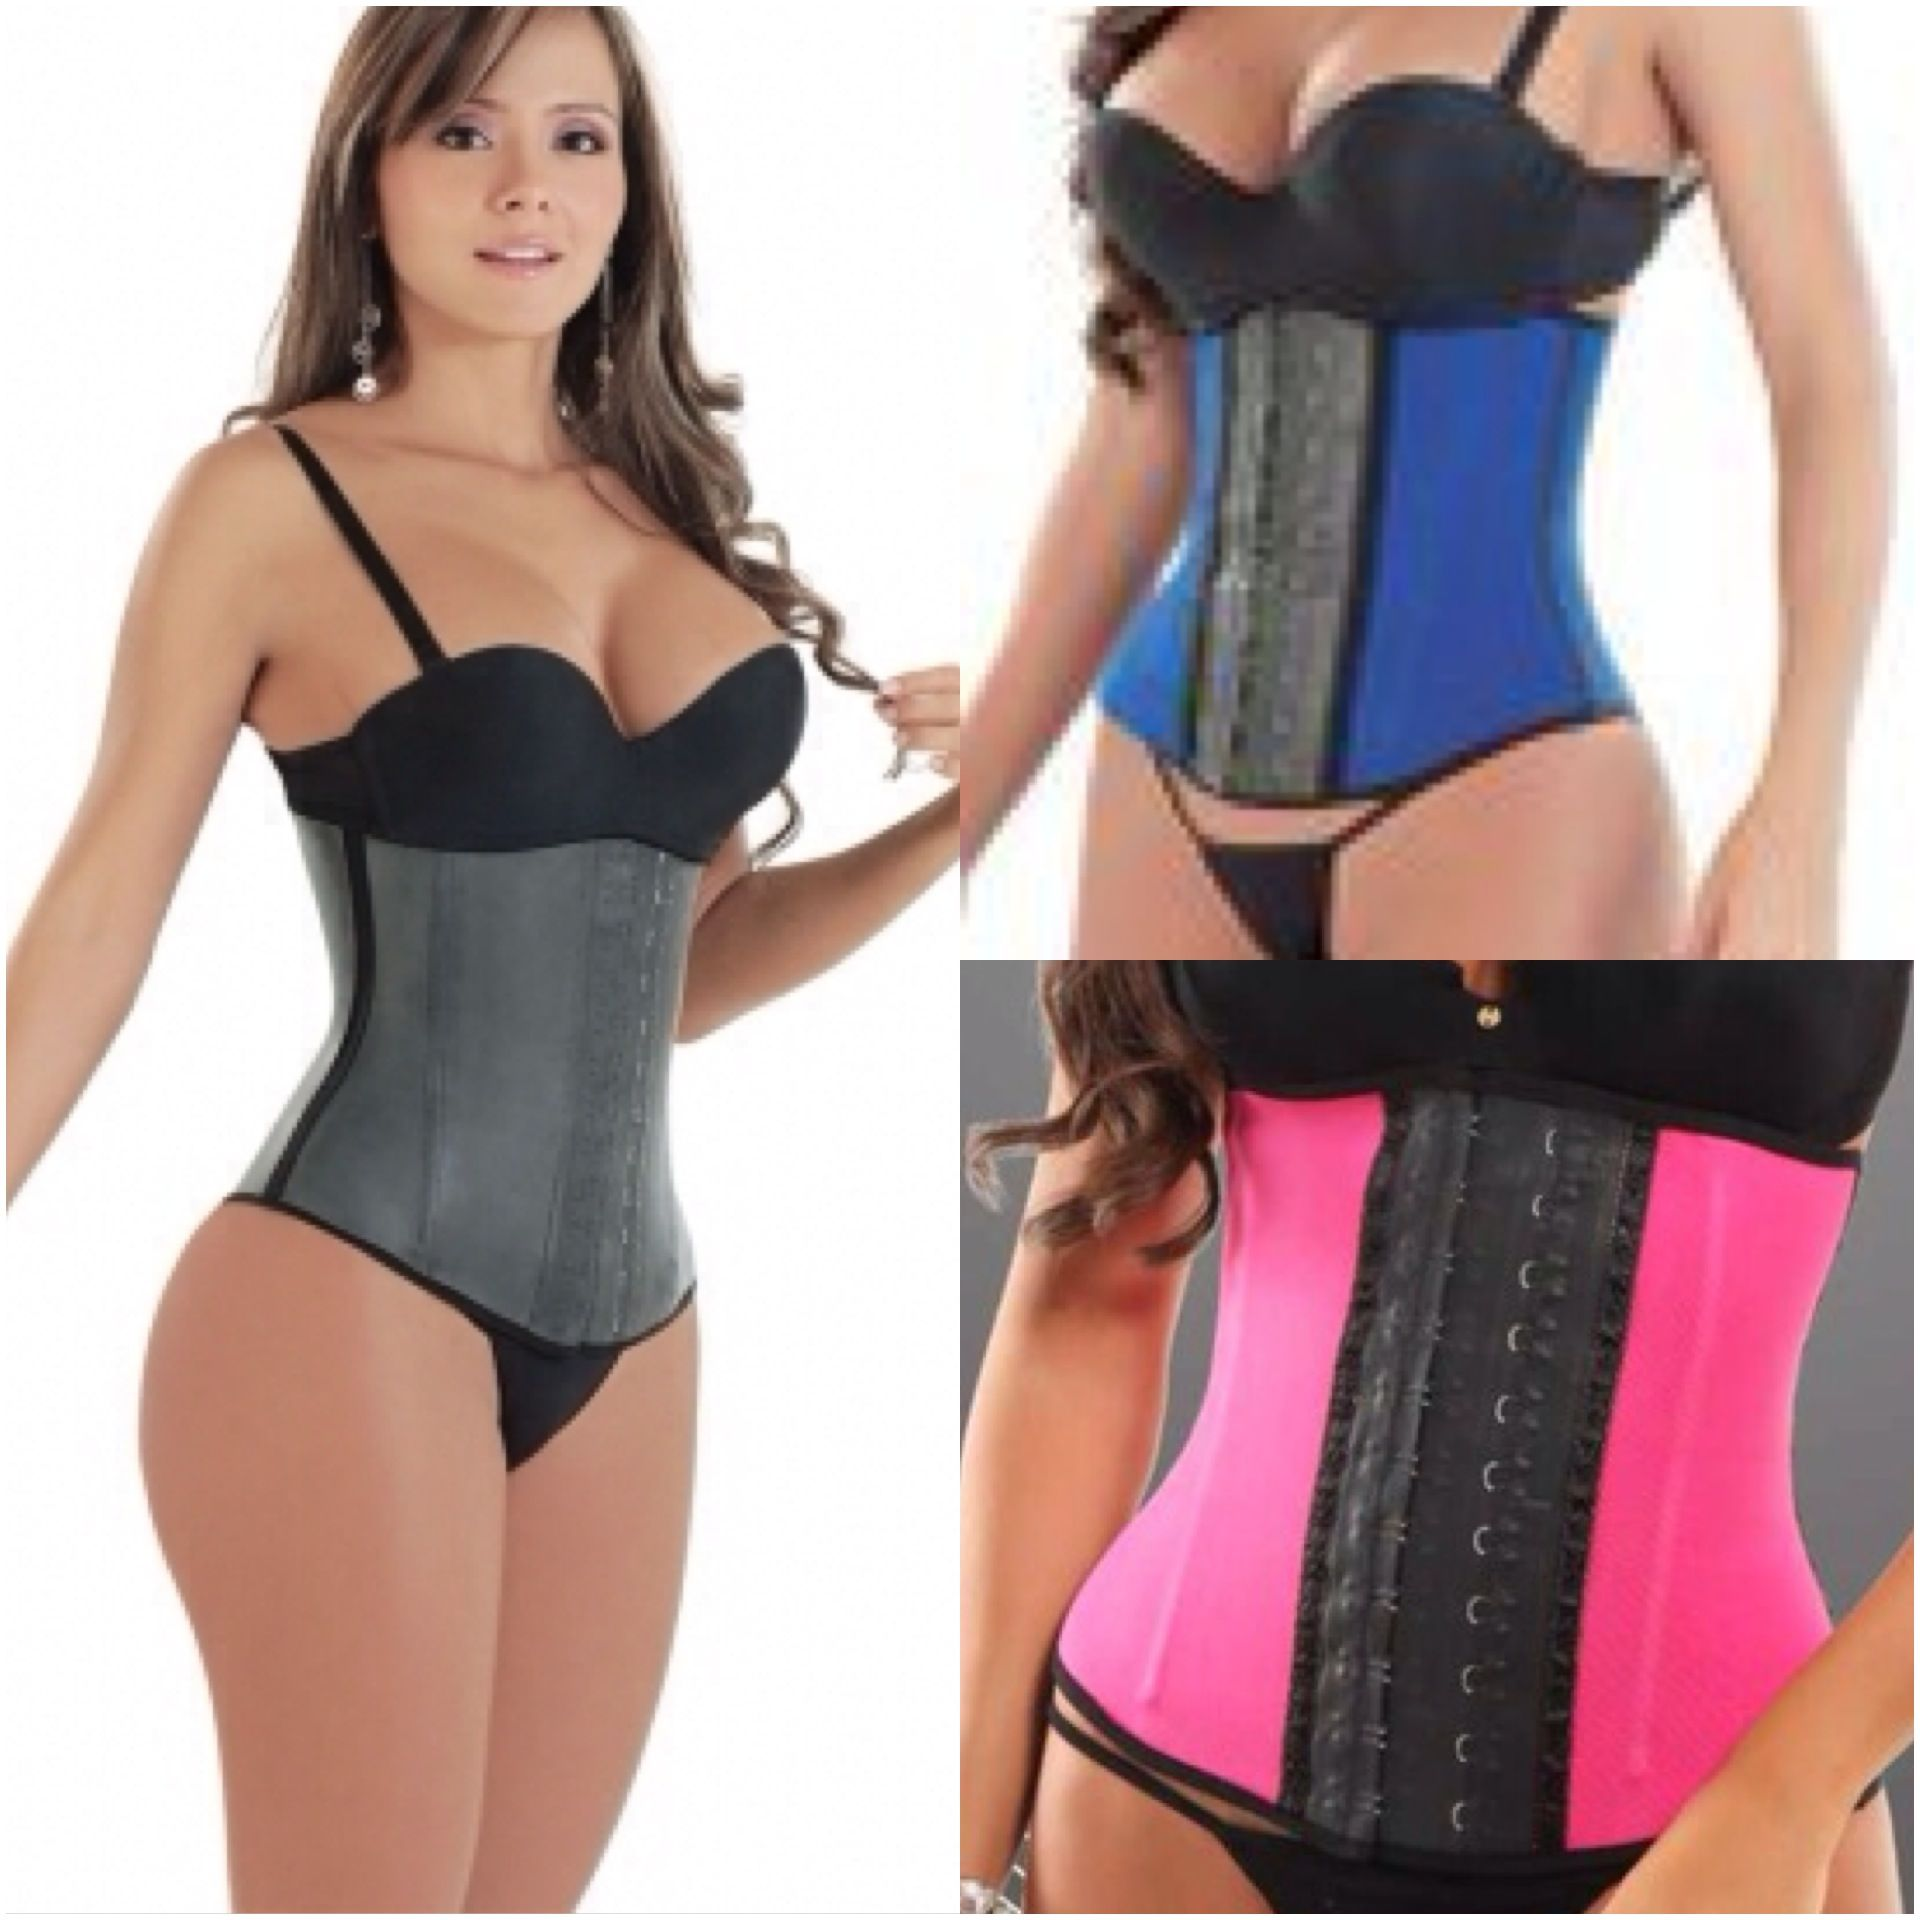 5e842bd818 Corset Waist trainers are UNISEX   they really WORKS! Corset Training is one  of the oldest forms of waist reduction for women who want a curvy sexy  figure.